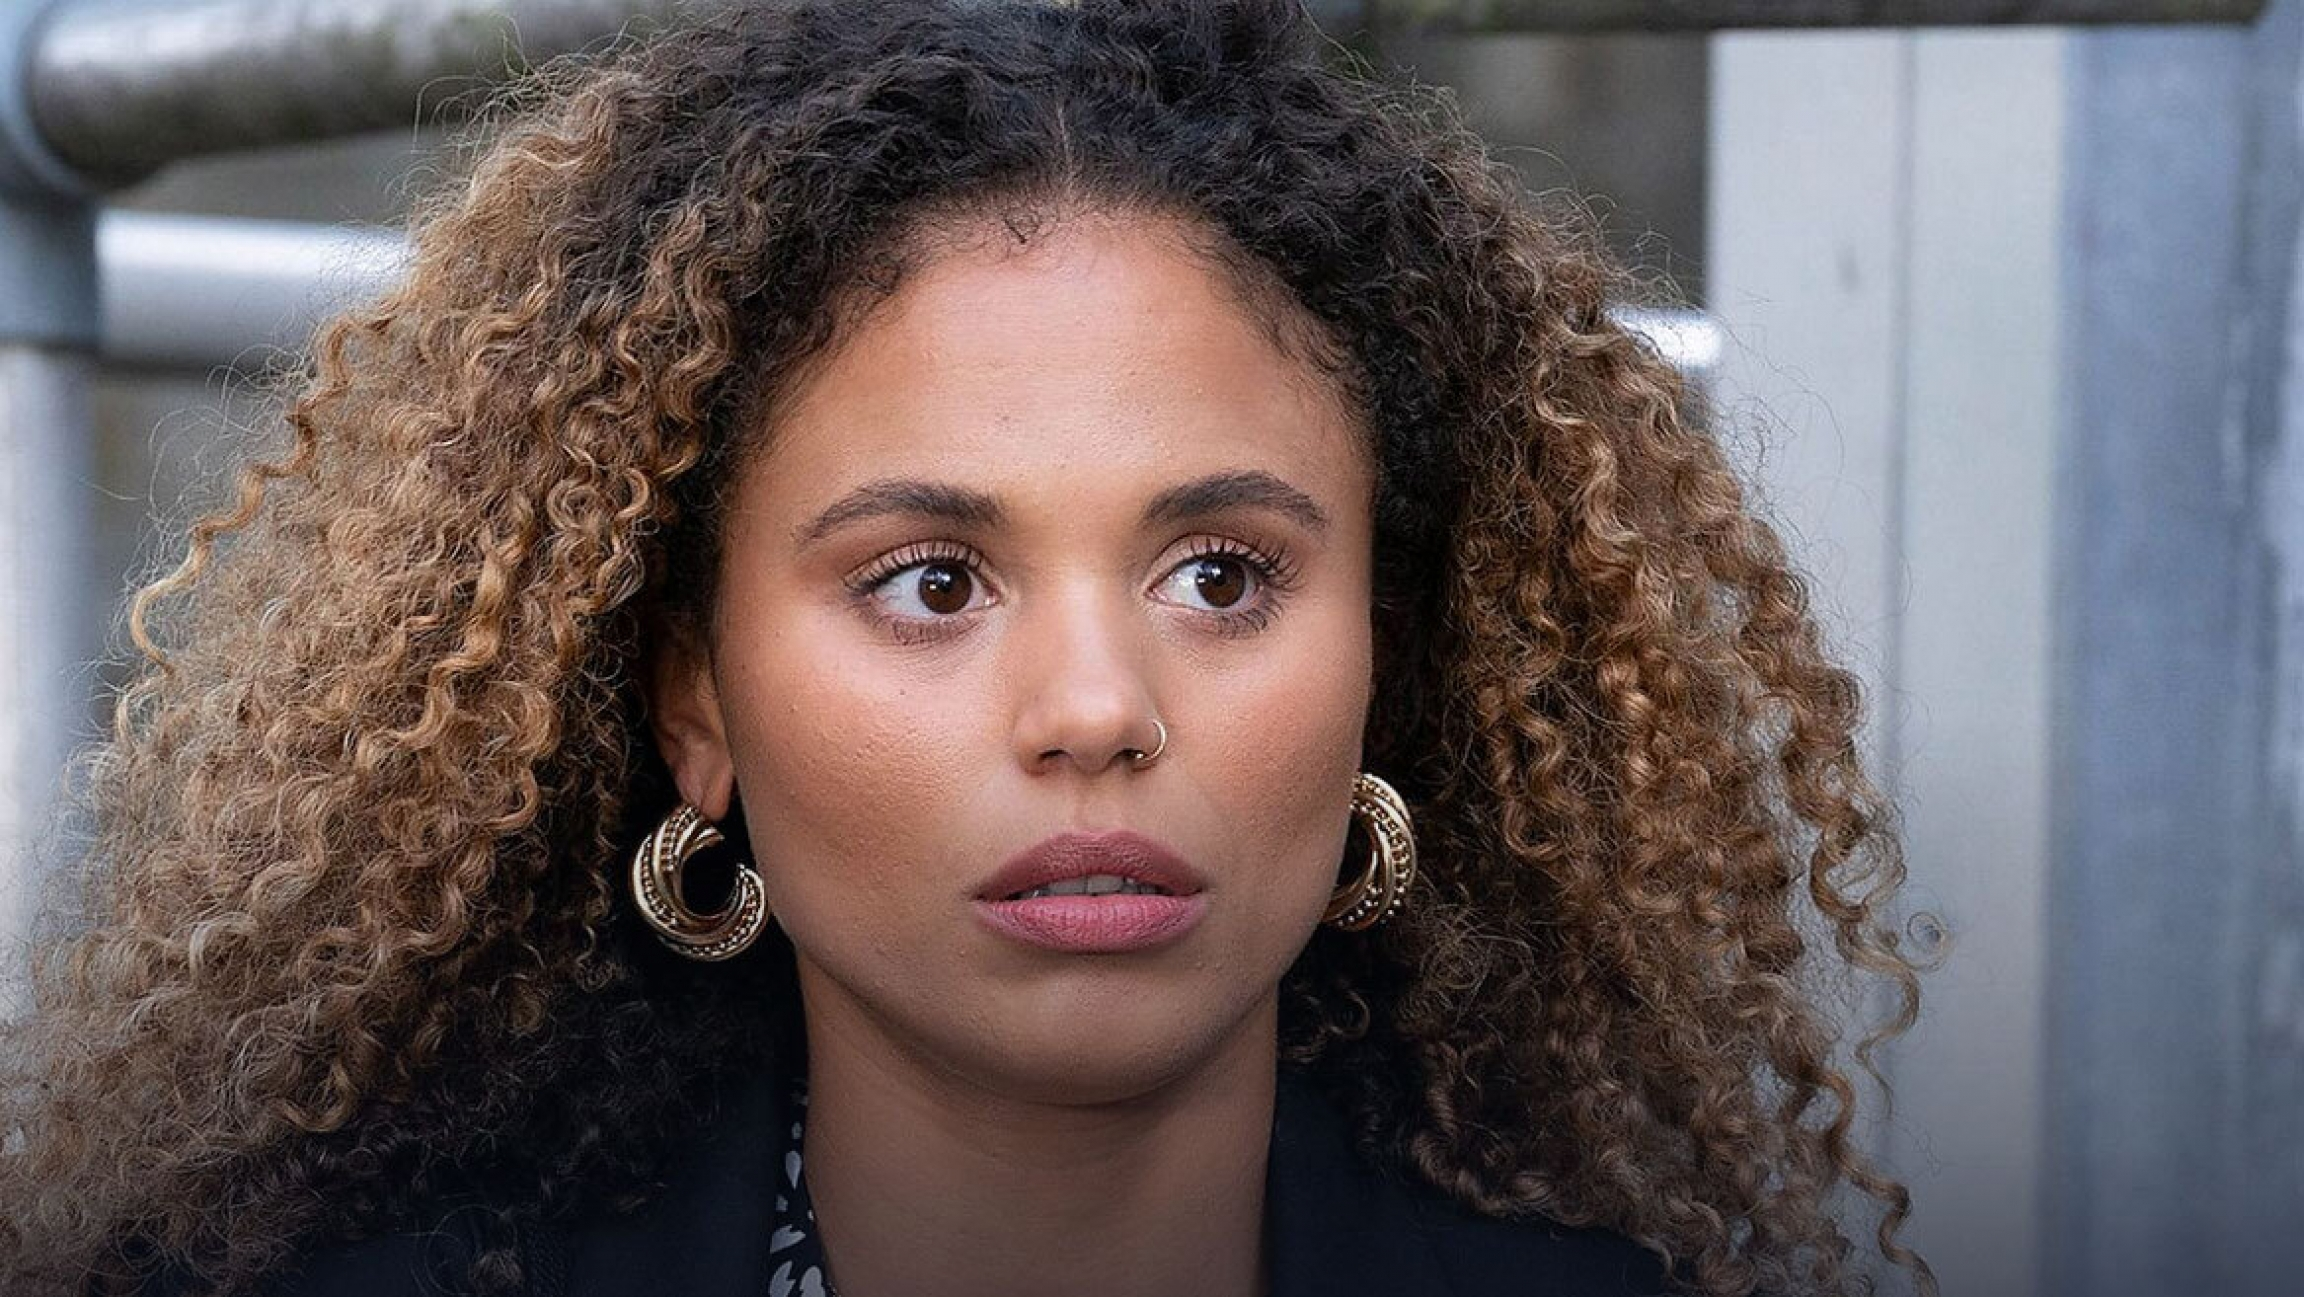 A close-up portrait of a young, light-skinned Black woman with curly hair wearing gold-hooped earrings